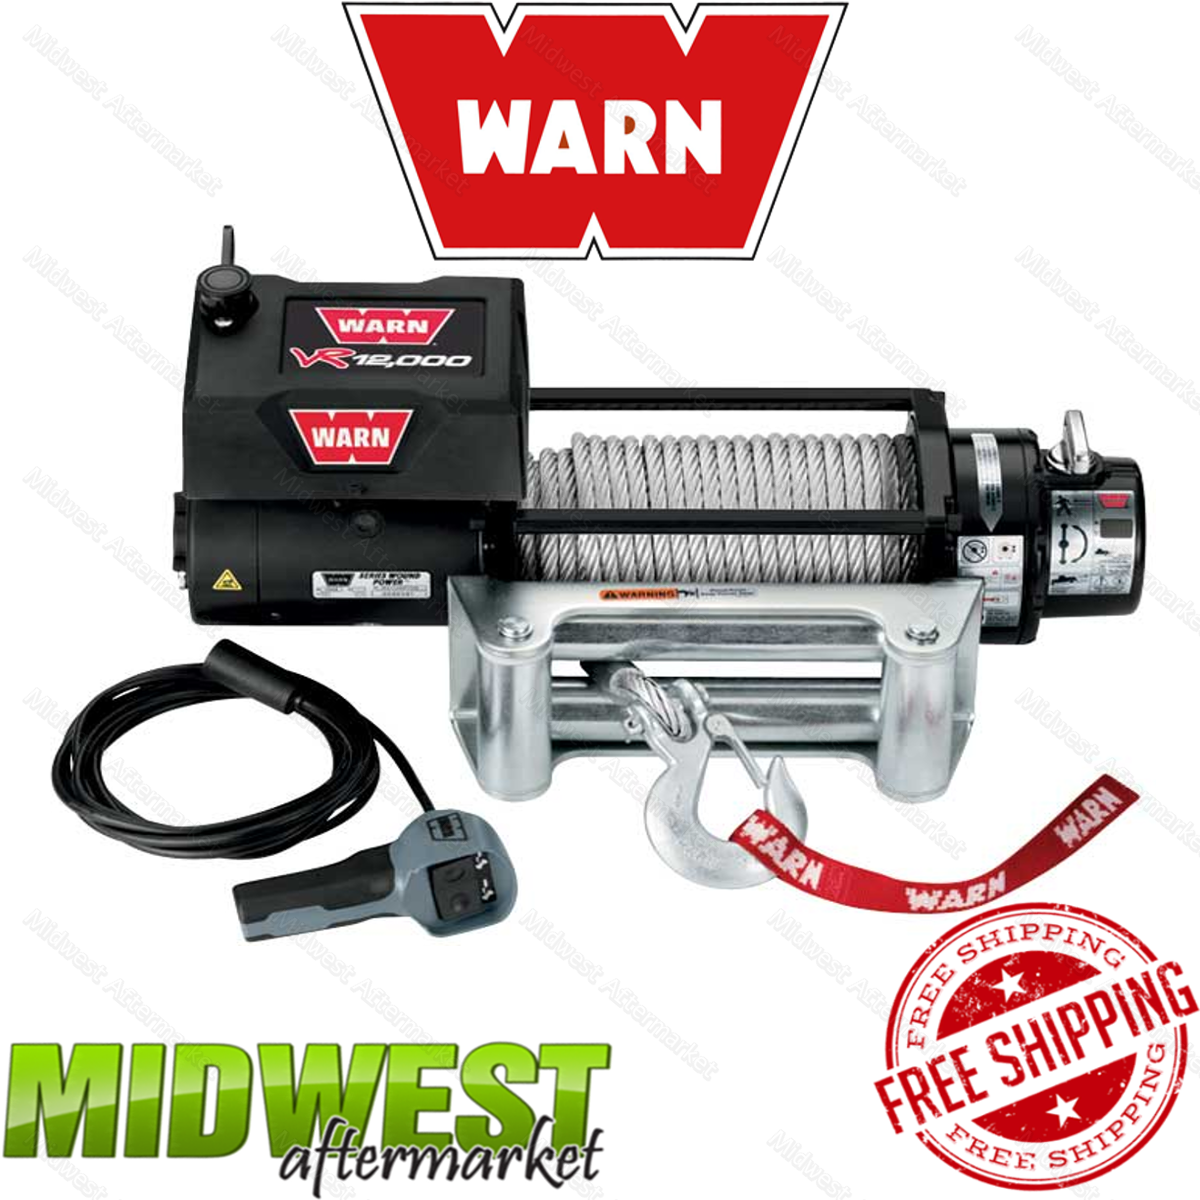 warn vr12000 wiring diagram 86260    warn    12k lb self recovery electric winch w wire  86260    warn    12k lb self recovery electric winch w wire